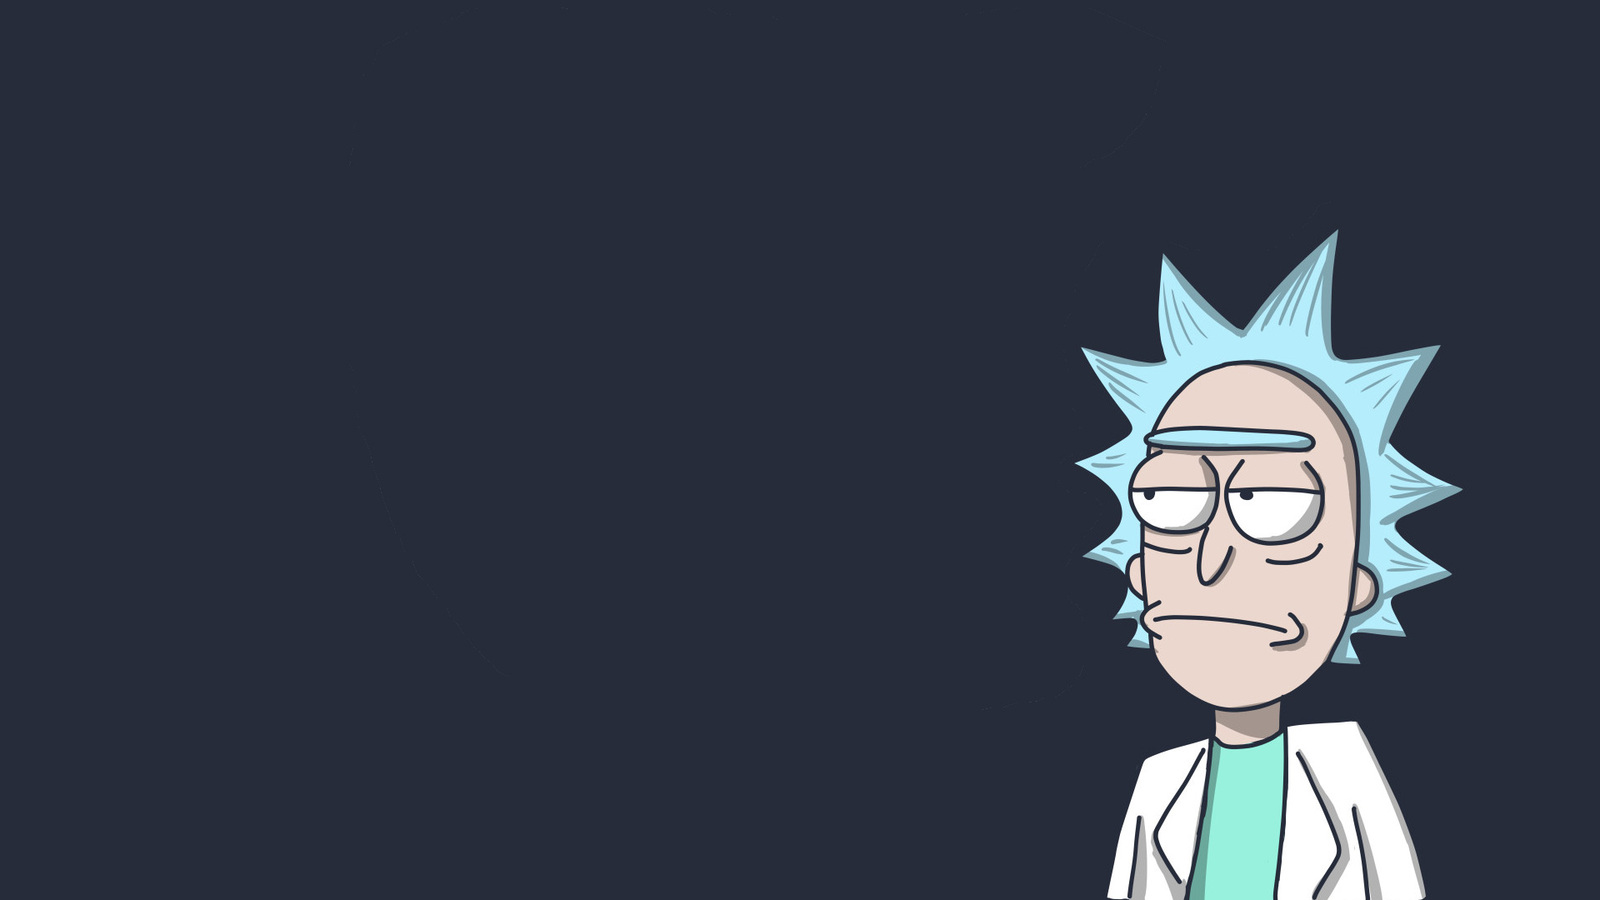 1600x900 Rick In Rick And Morty 1600x900 Resolution Hd 4k Wallpapers